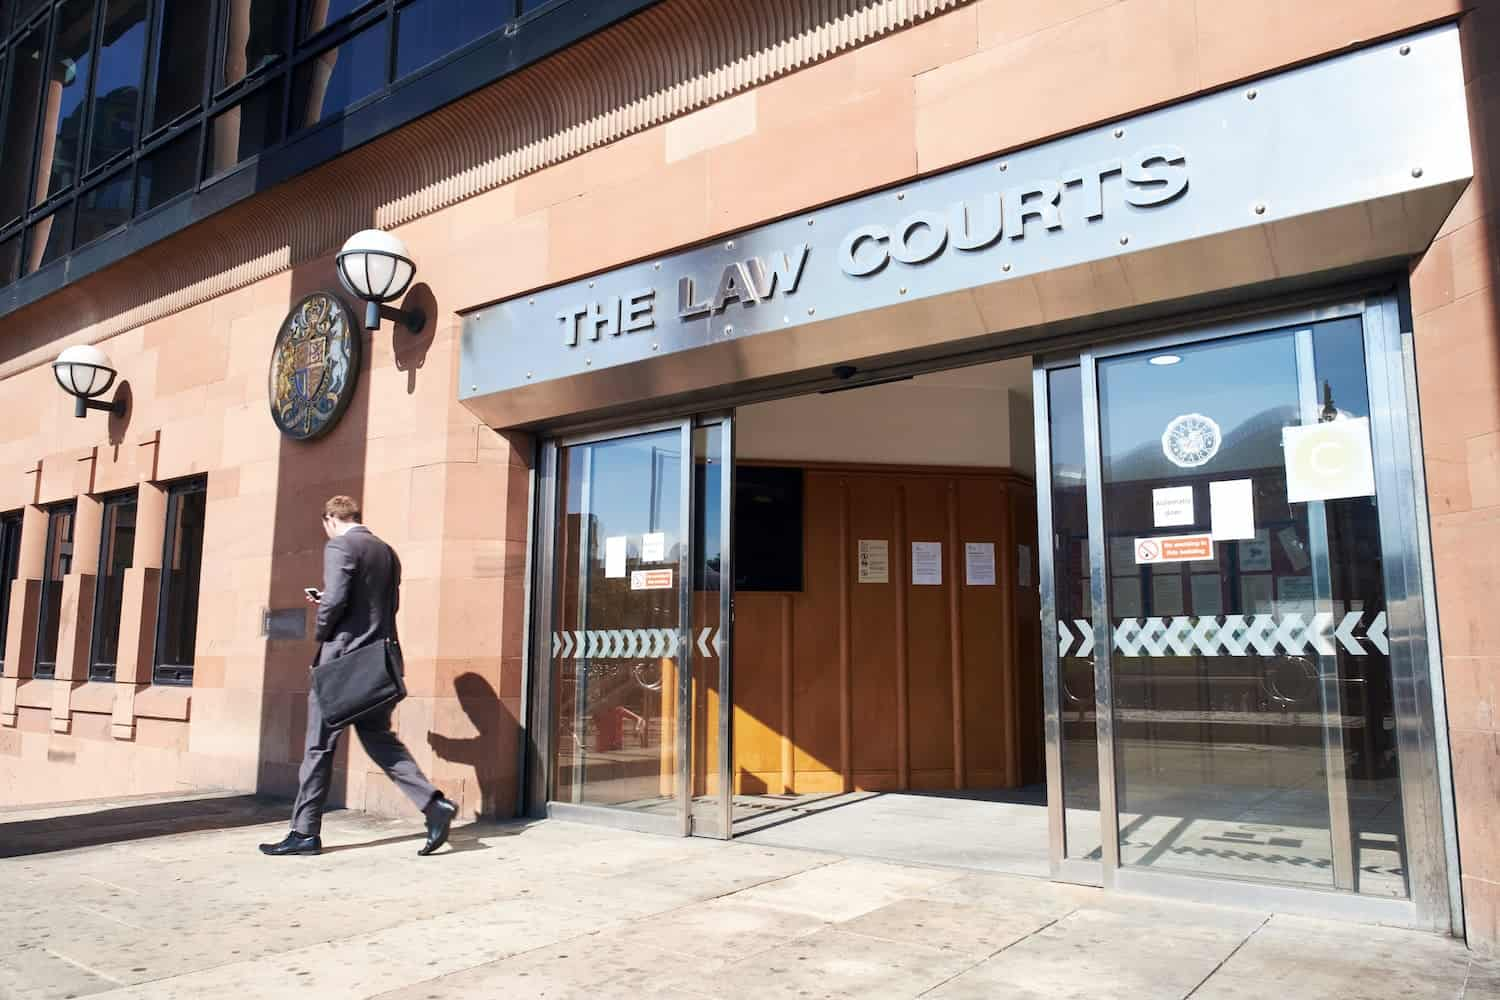 Law Crown Court